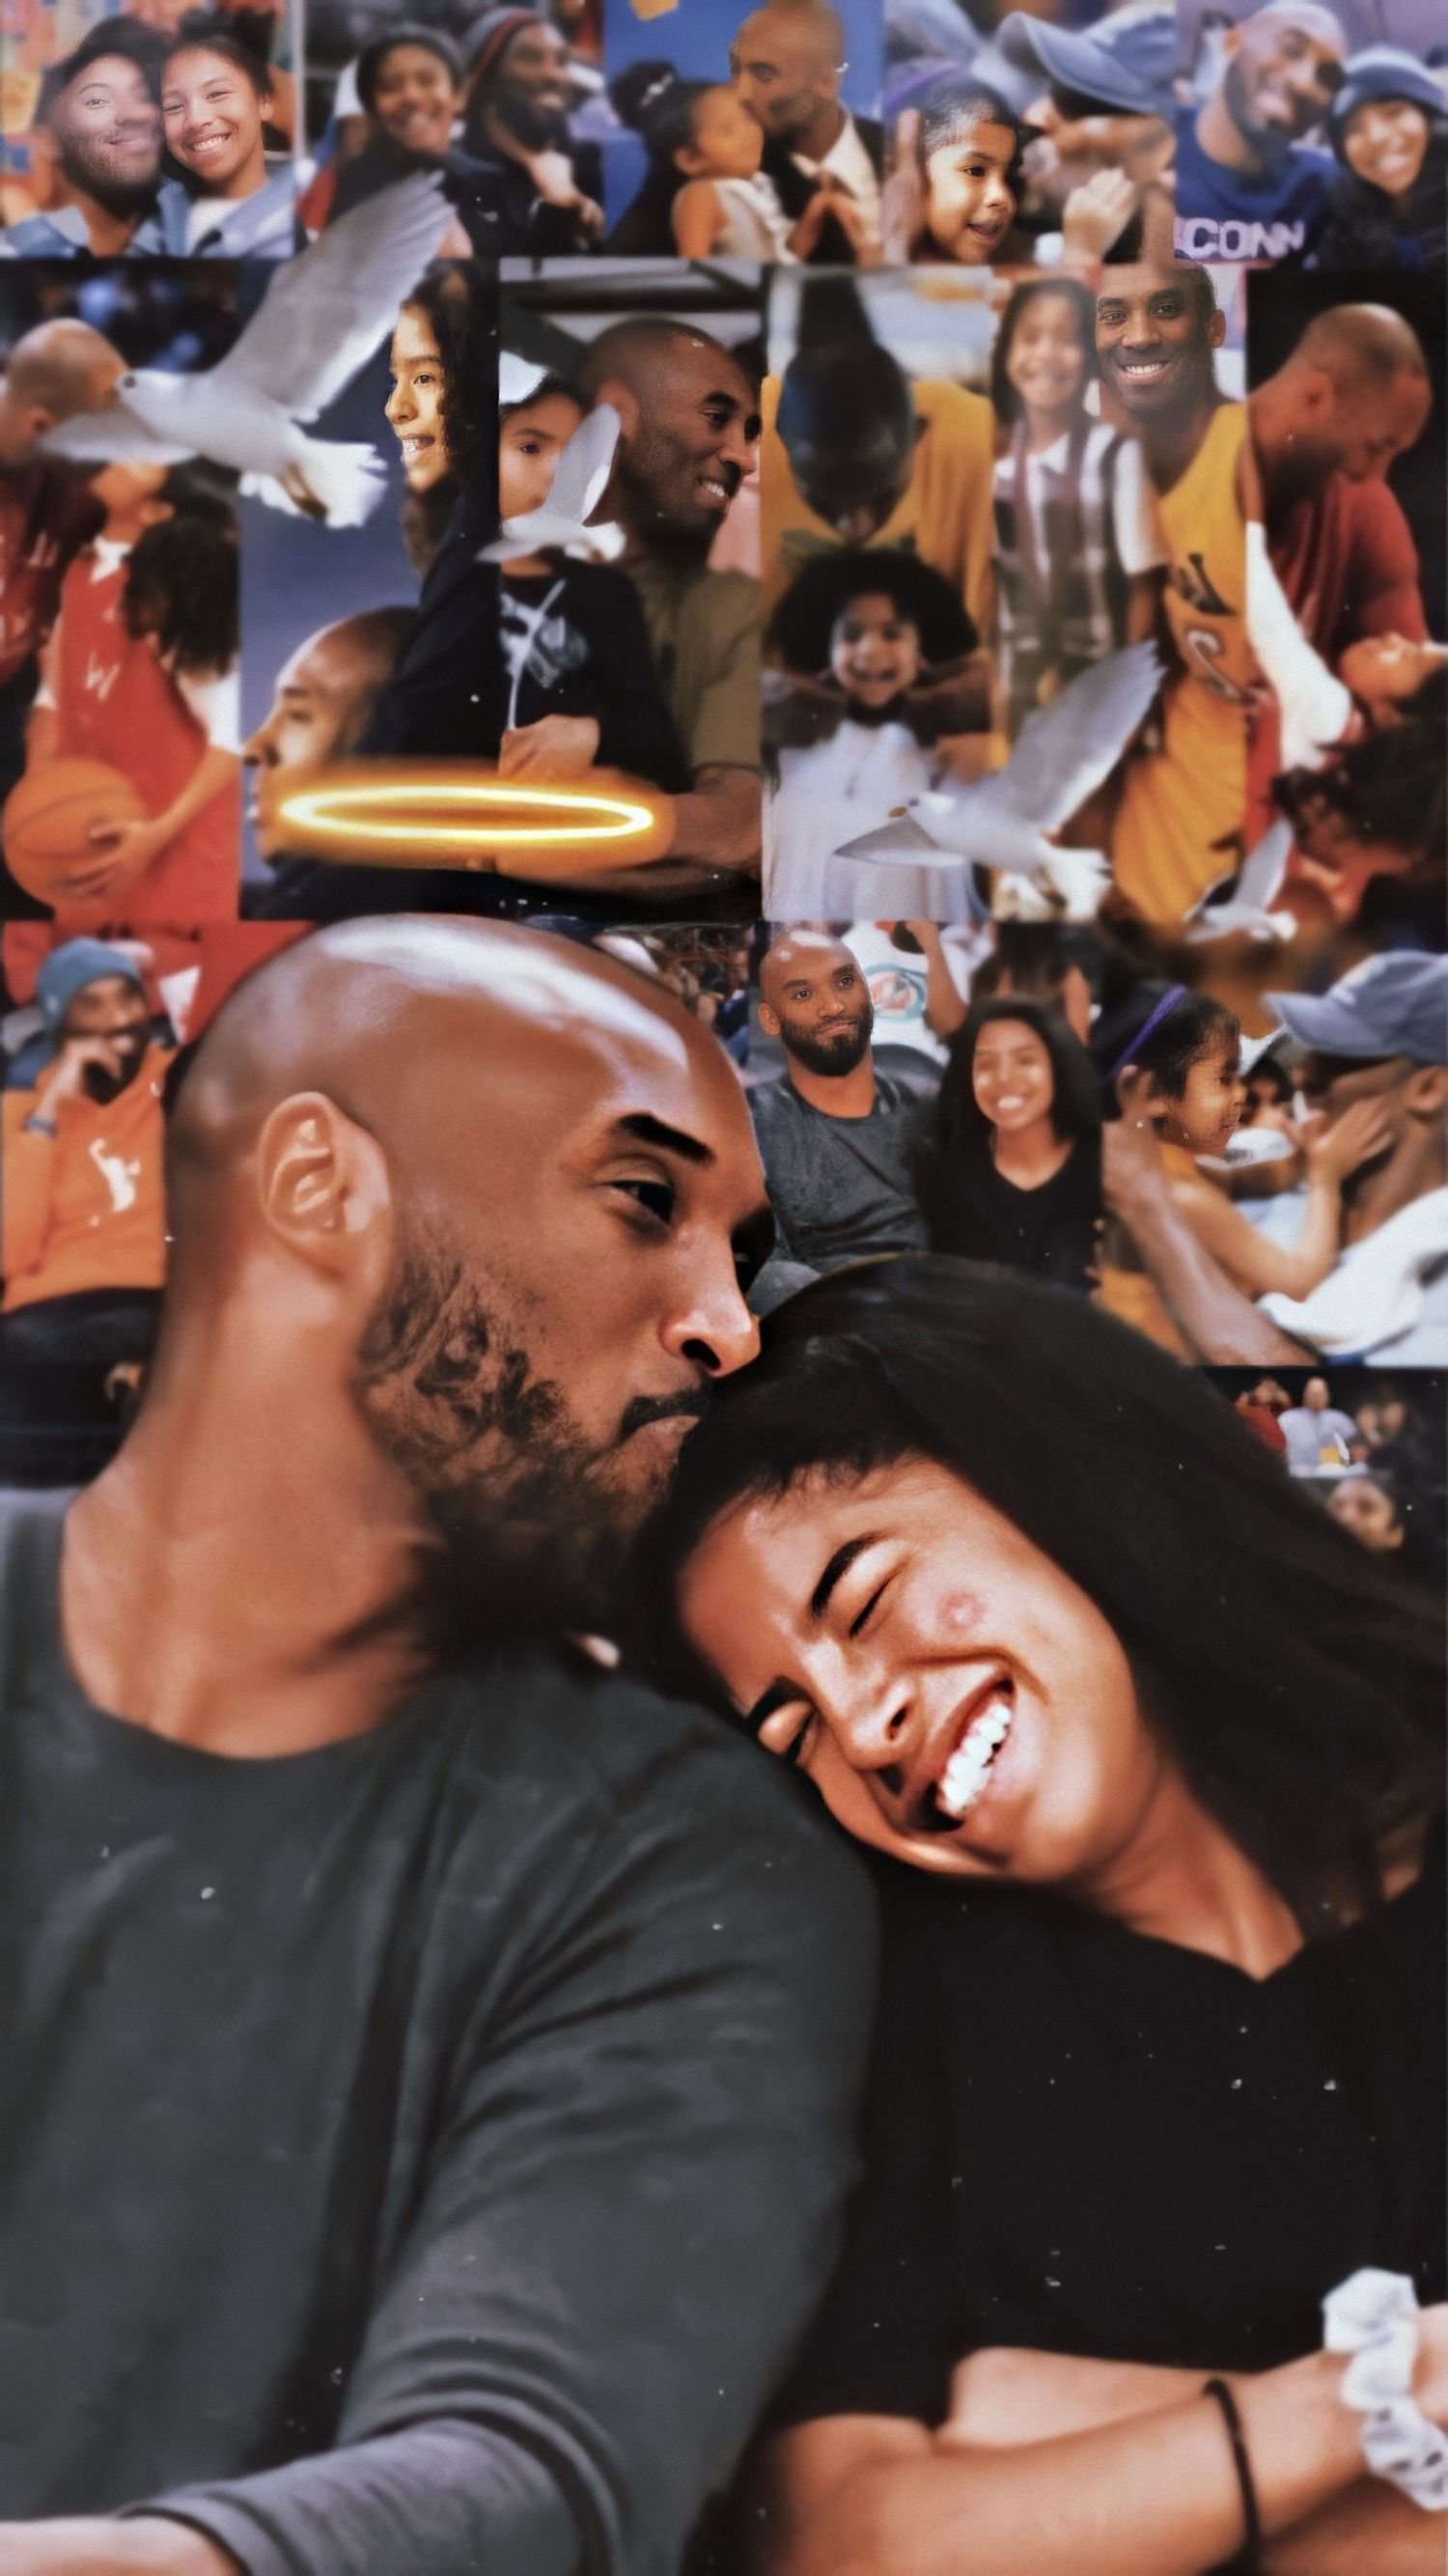 Kobe And Gigi Wallpaper For Mobile Phone Tablet Desktop Computer And Other Devices Hd And 4k Wallpapers In 2021 Kobe Gigi Kobe Bryant Pictures Celebrity Wallpapers Kobe and gigi wallpaper iphone 6s